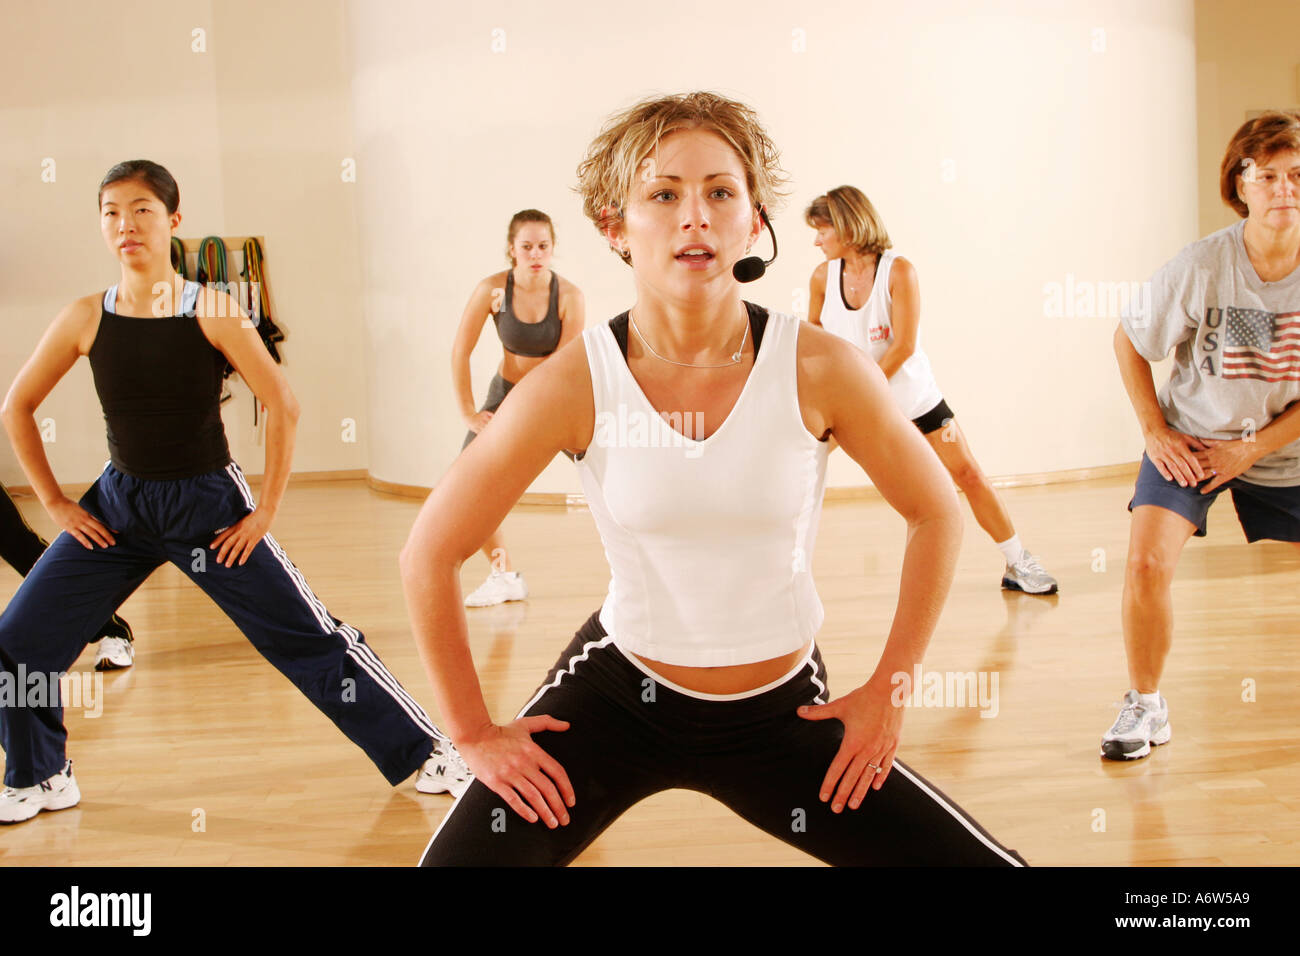 a kickboxing or aerobics class in a studio led by a blonde female ...